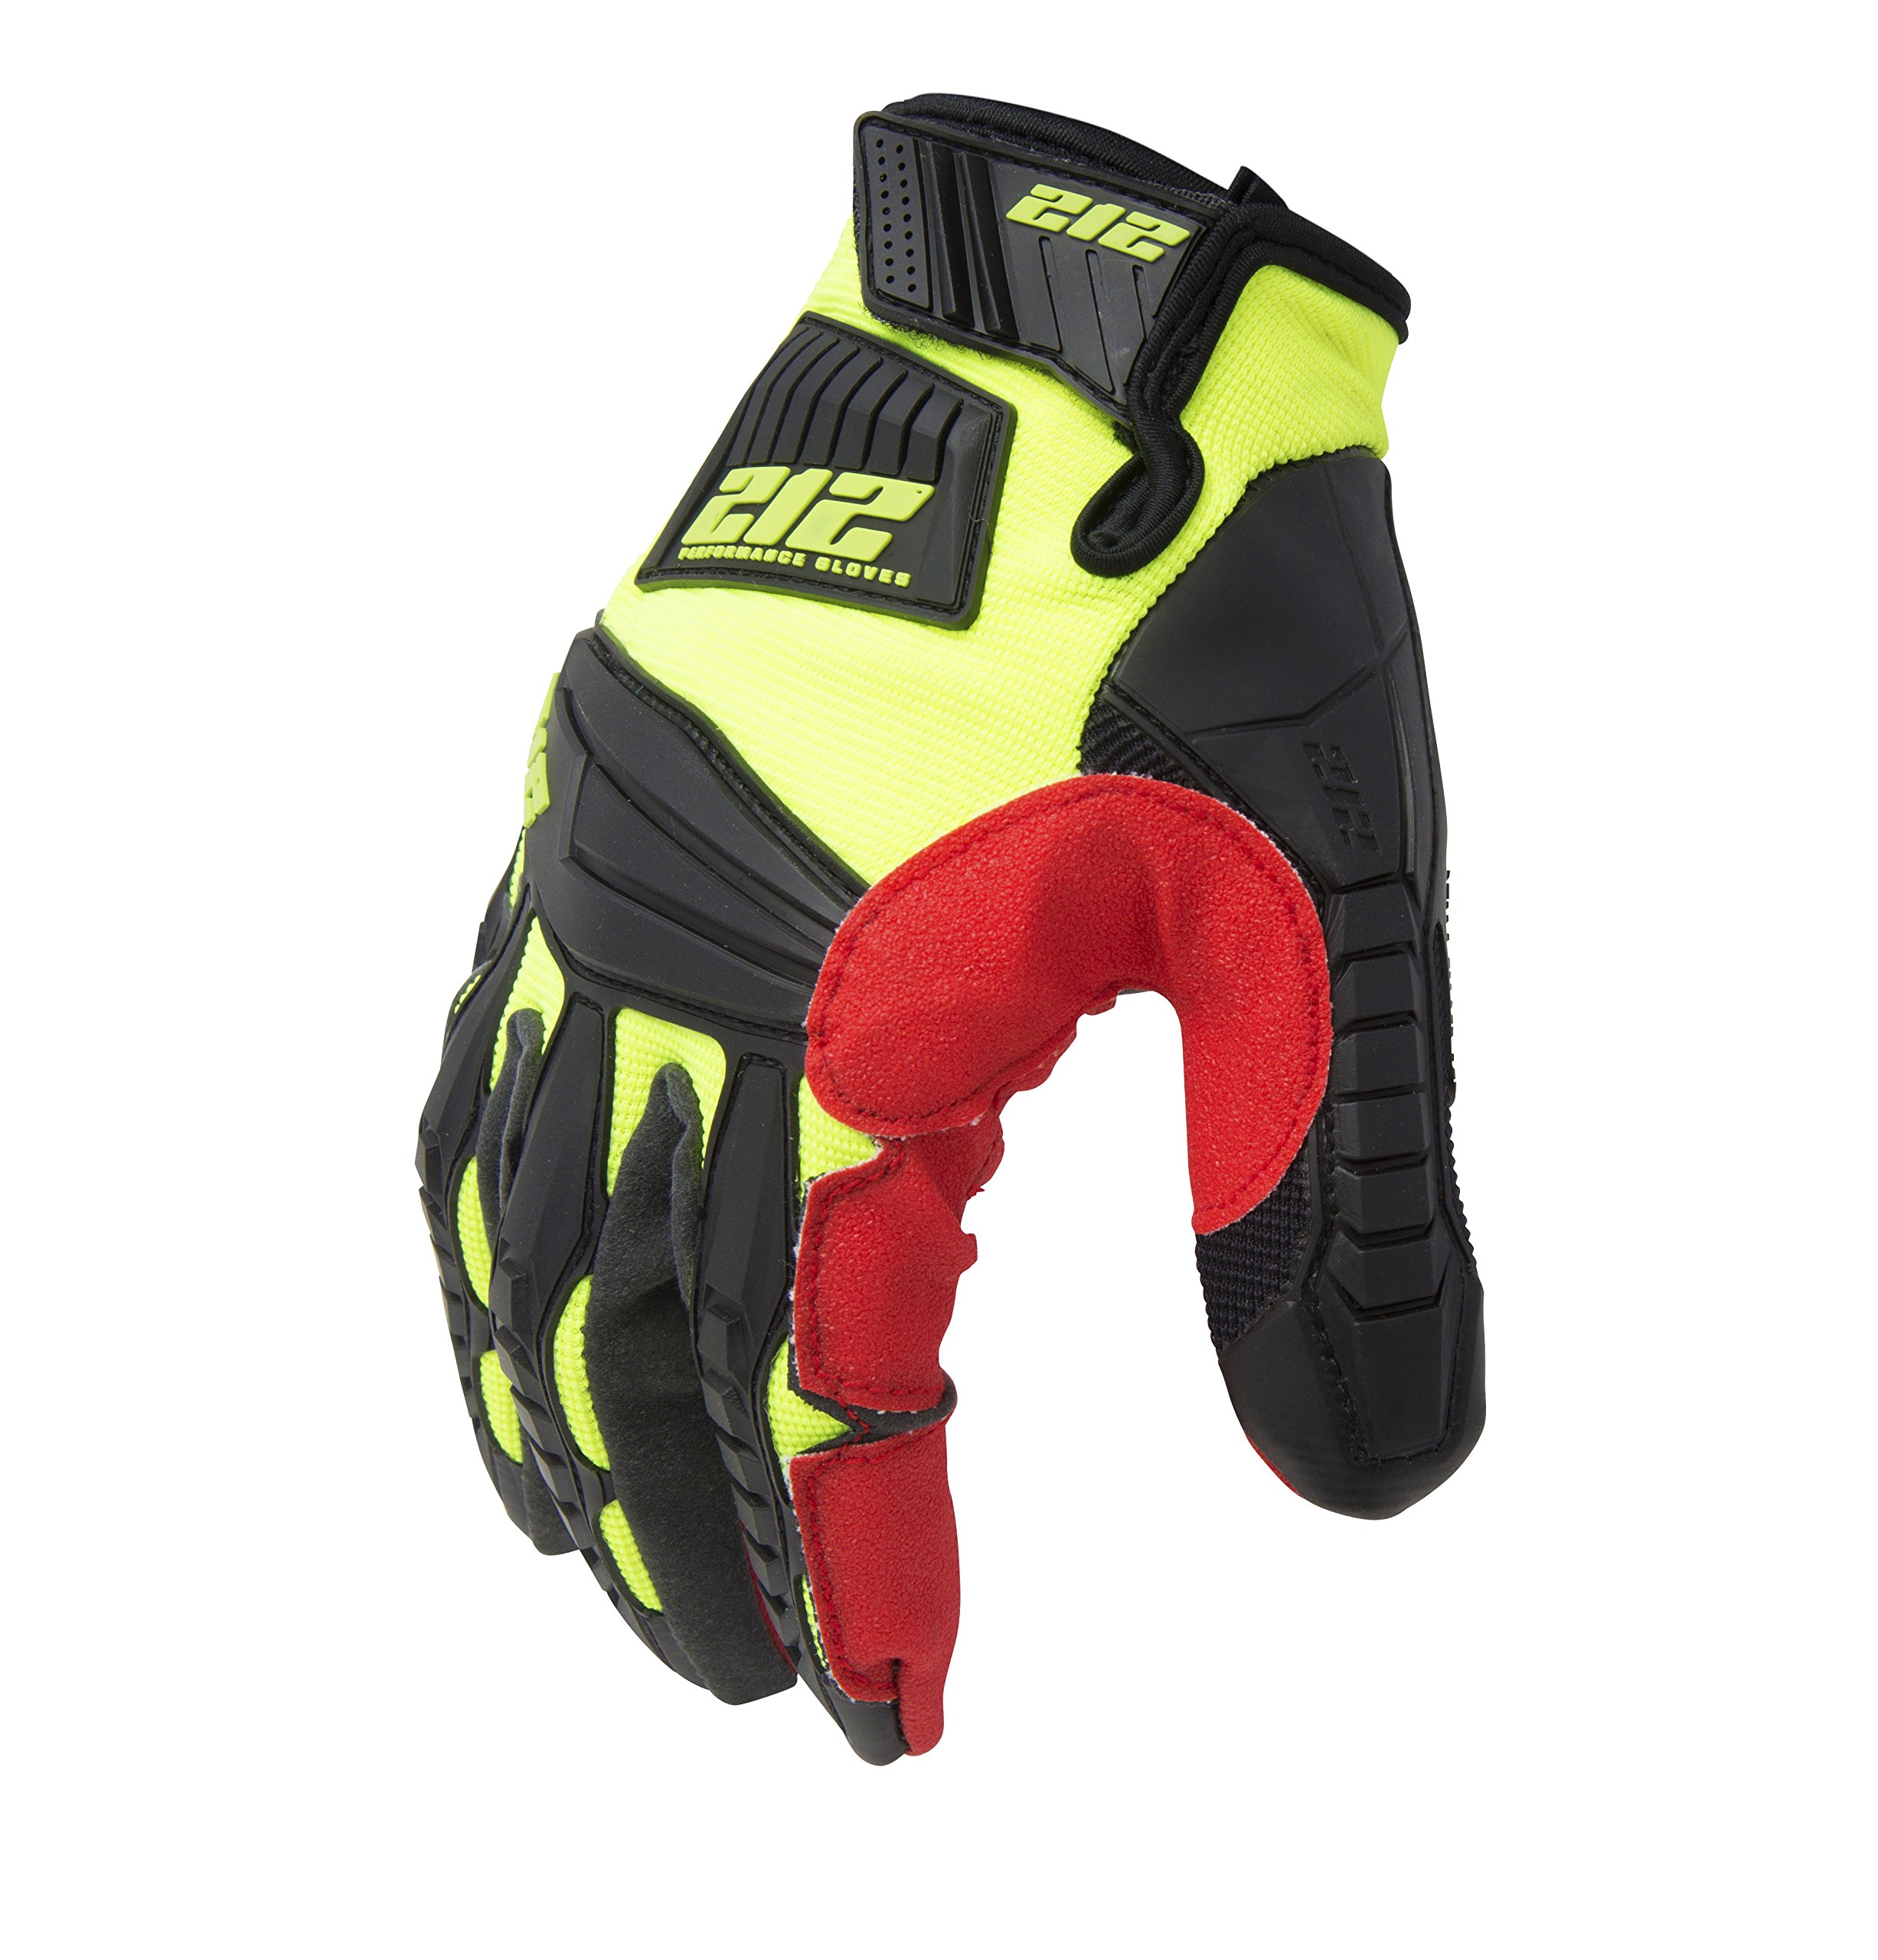 212 Performance Gloves IMP-88-009 Super Hi-Vis Impact Gloves, Medium